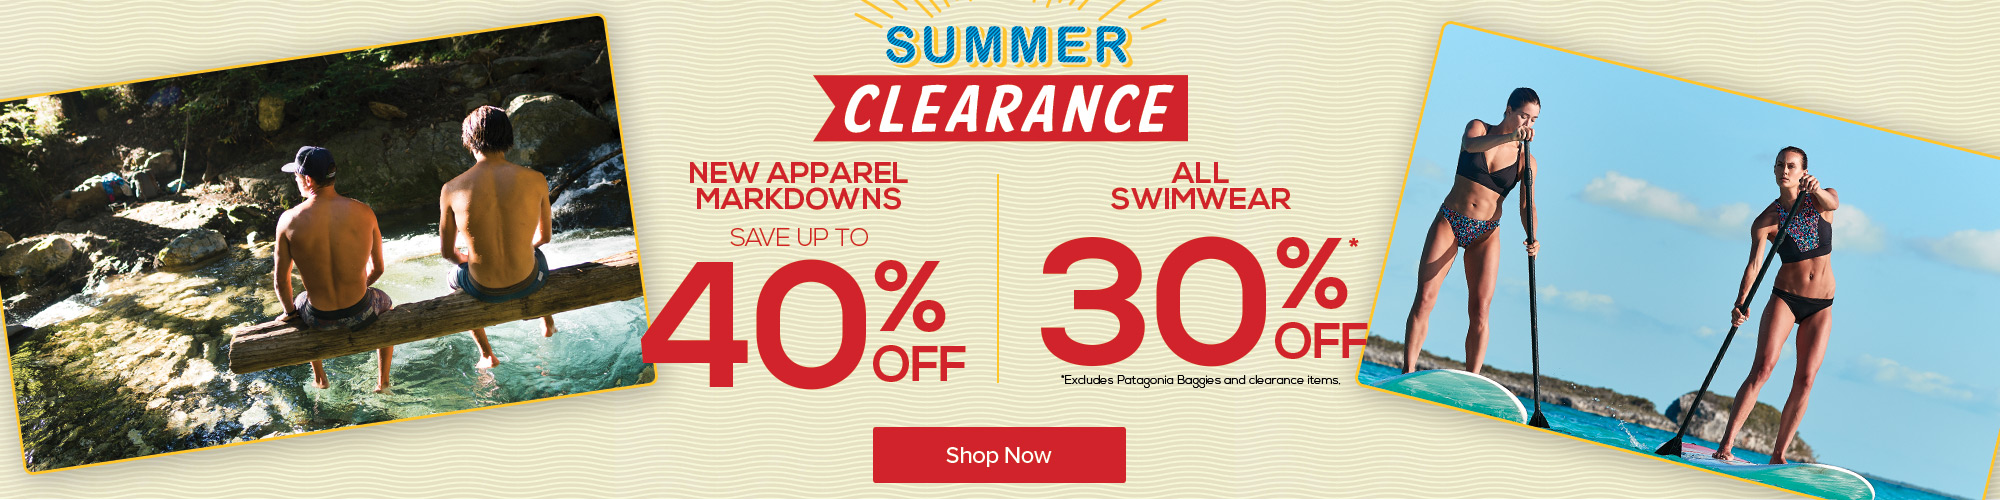 Summer Clearance. Save up to 40% Off.